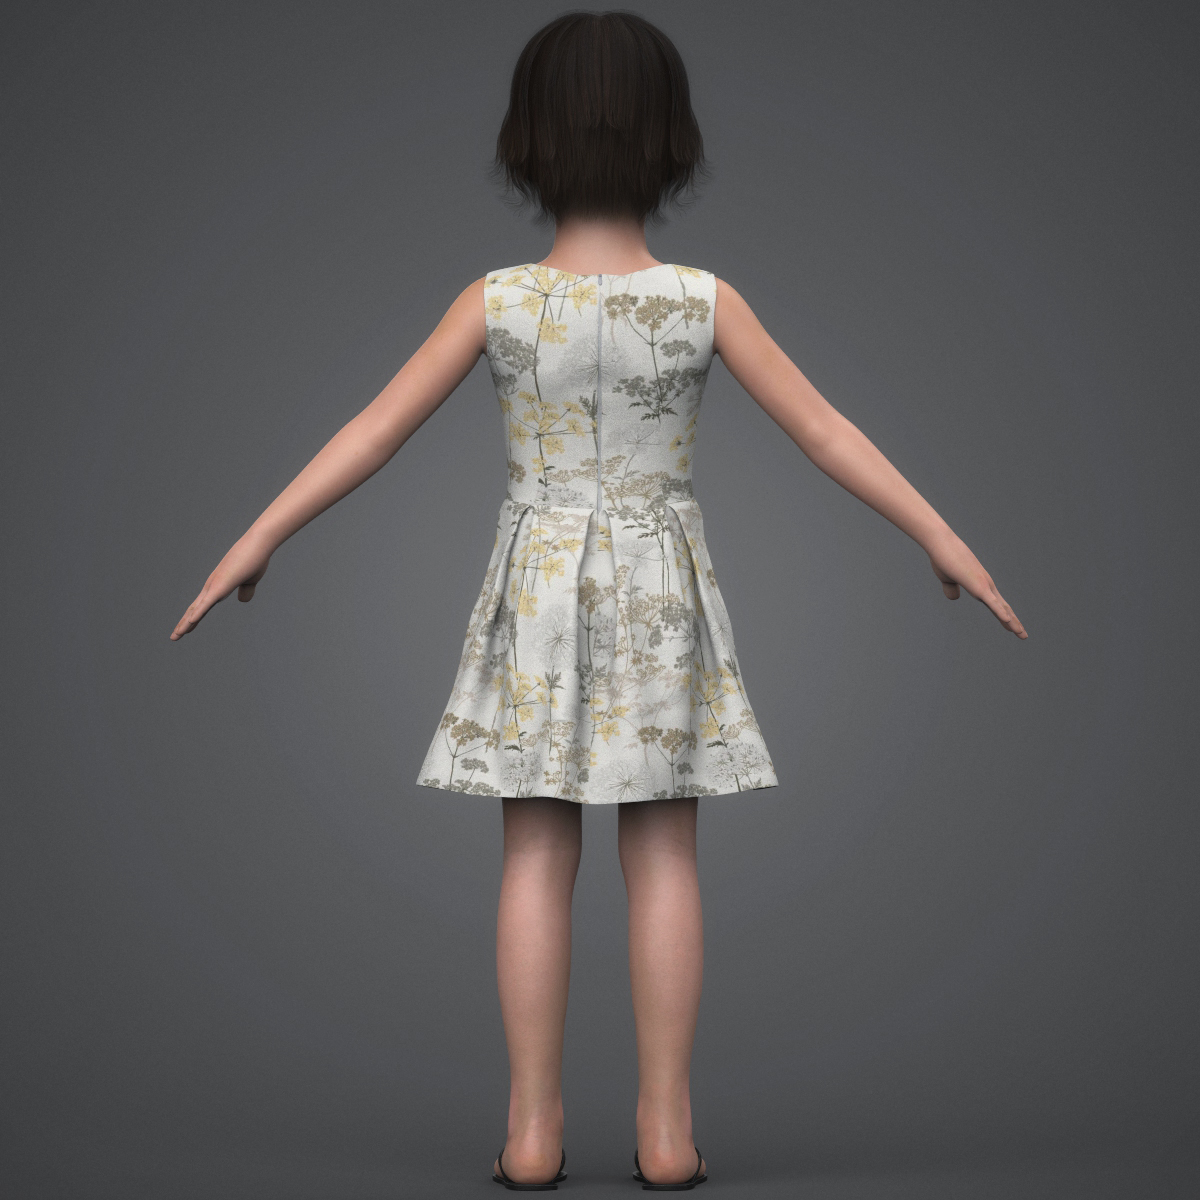 beautiful child girl 3d model max fbx c4d ma mb texture obj 252399